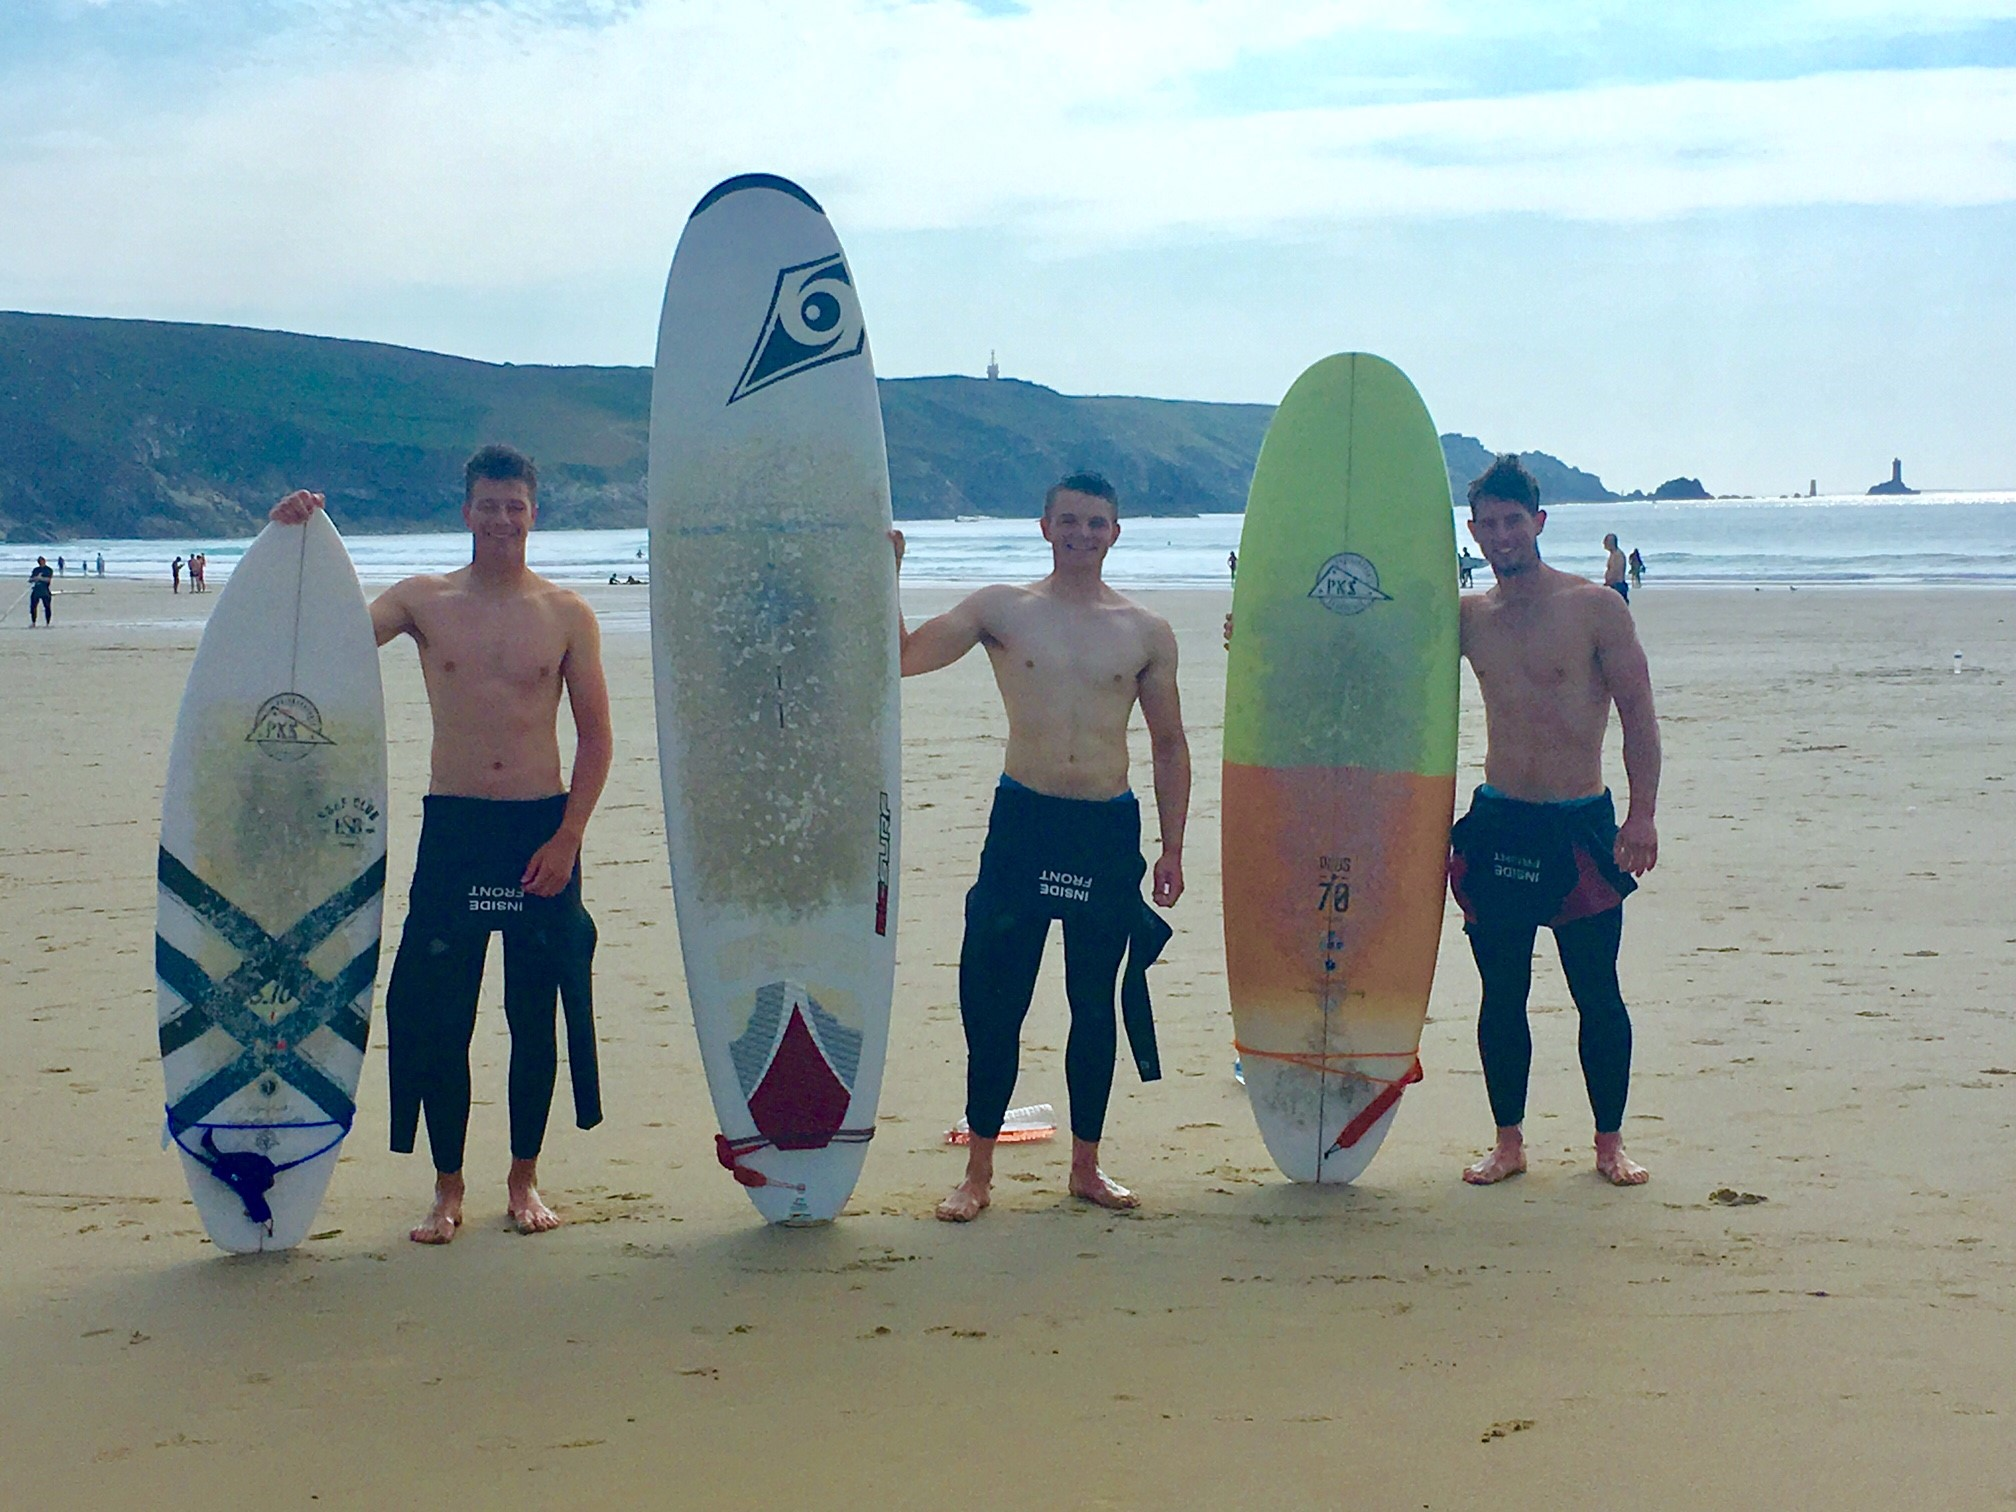 ...And ended up surfing on a lovely beach just down the coast. Despite it being my first ever time surfing I learnt quickly and had a whale of a time surfing some awesome waves!